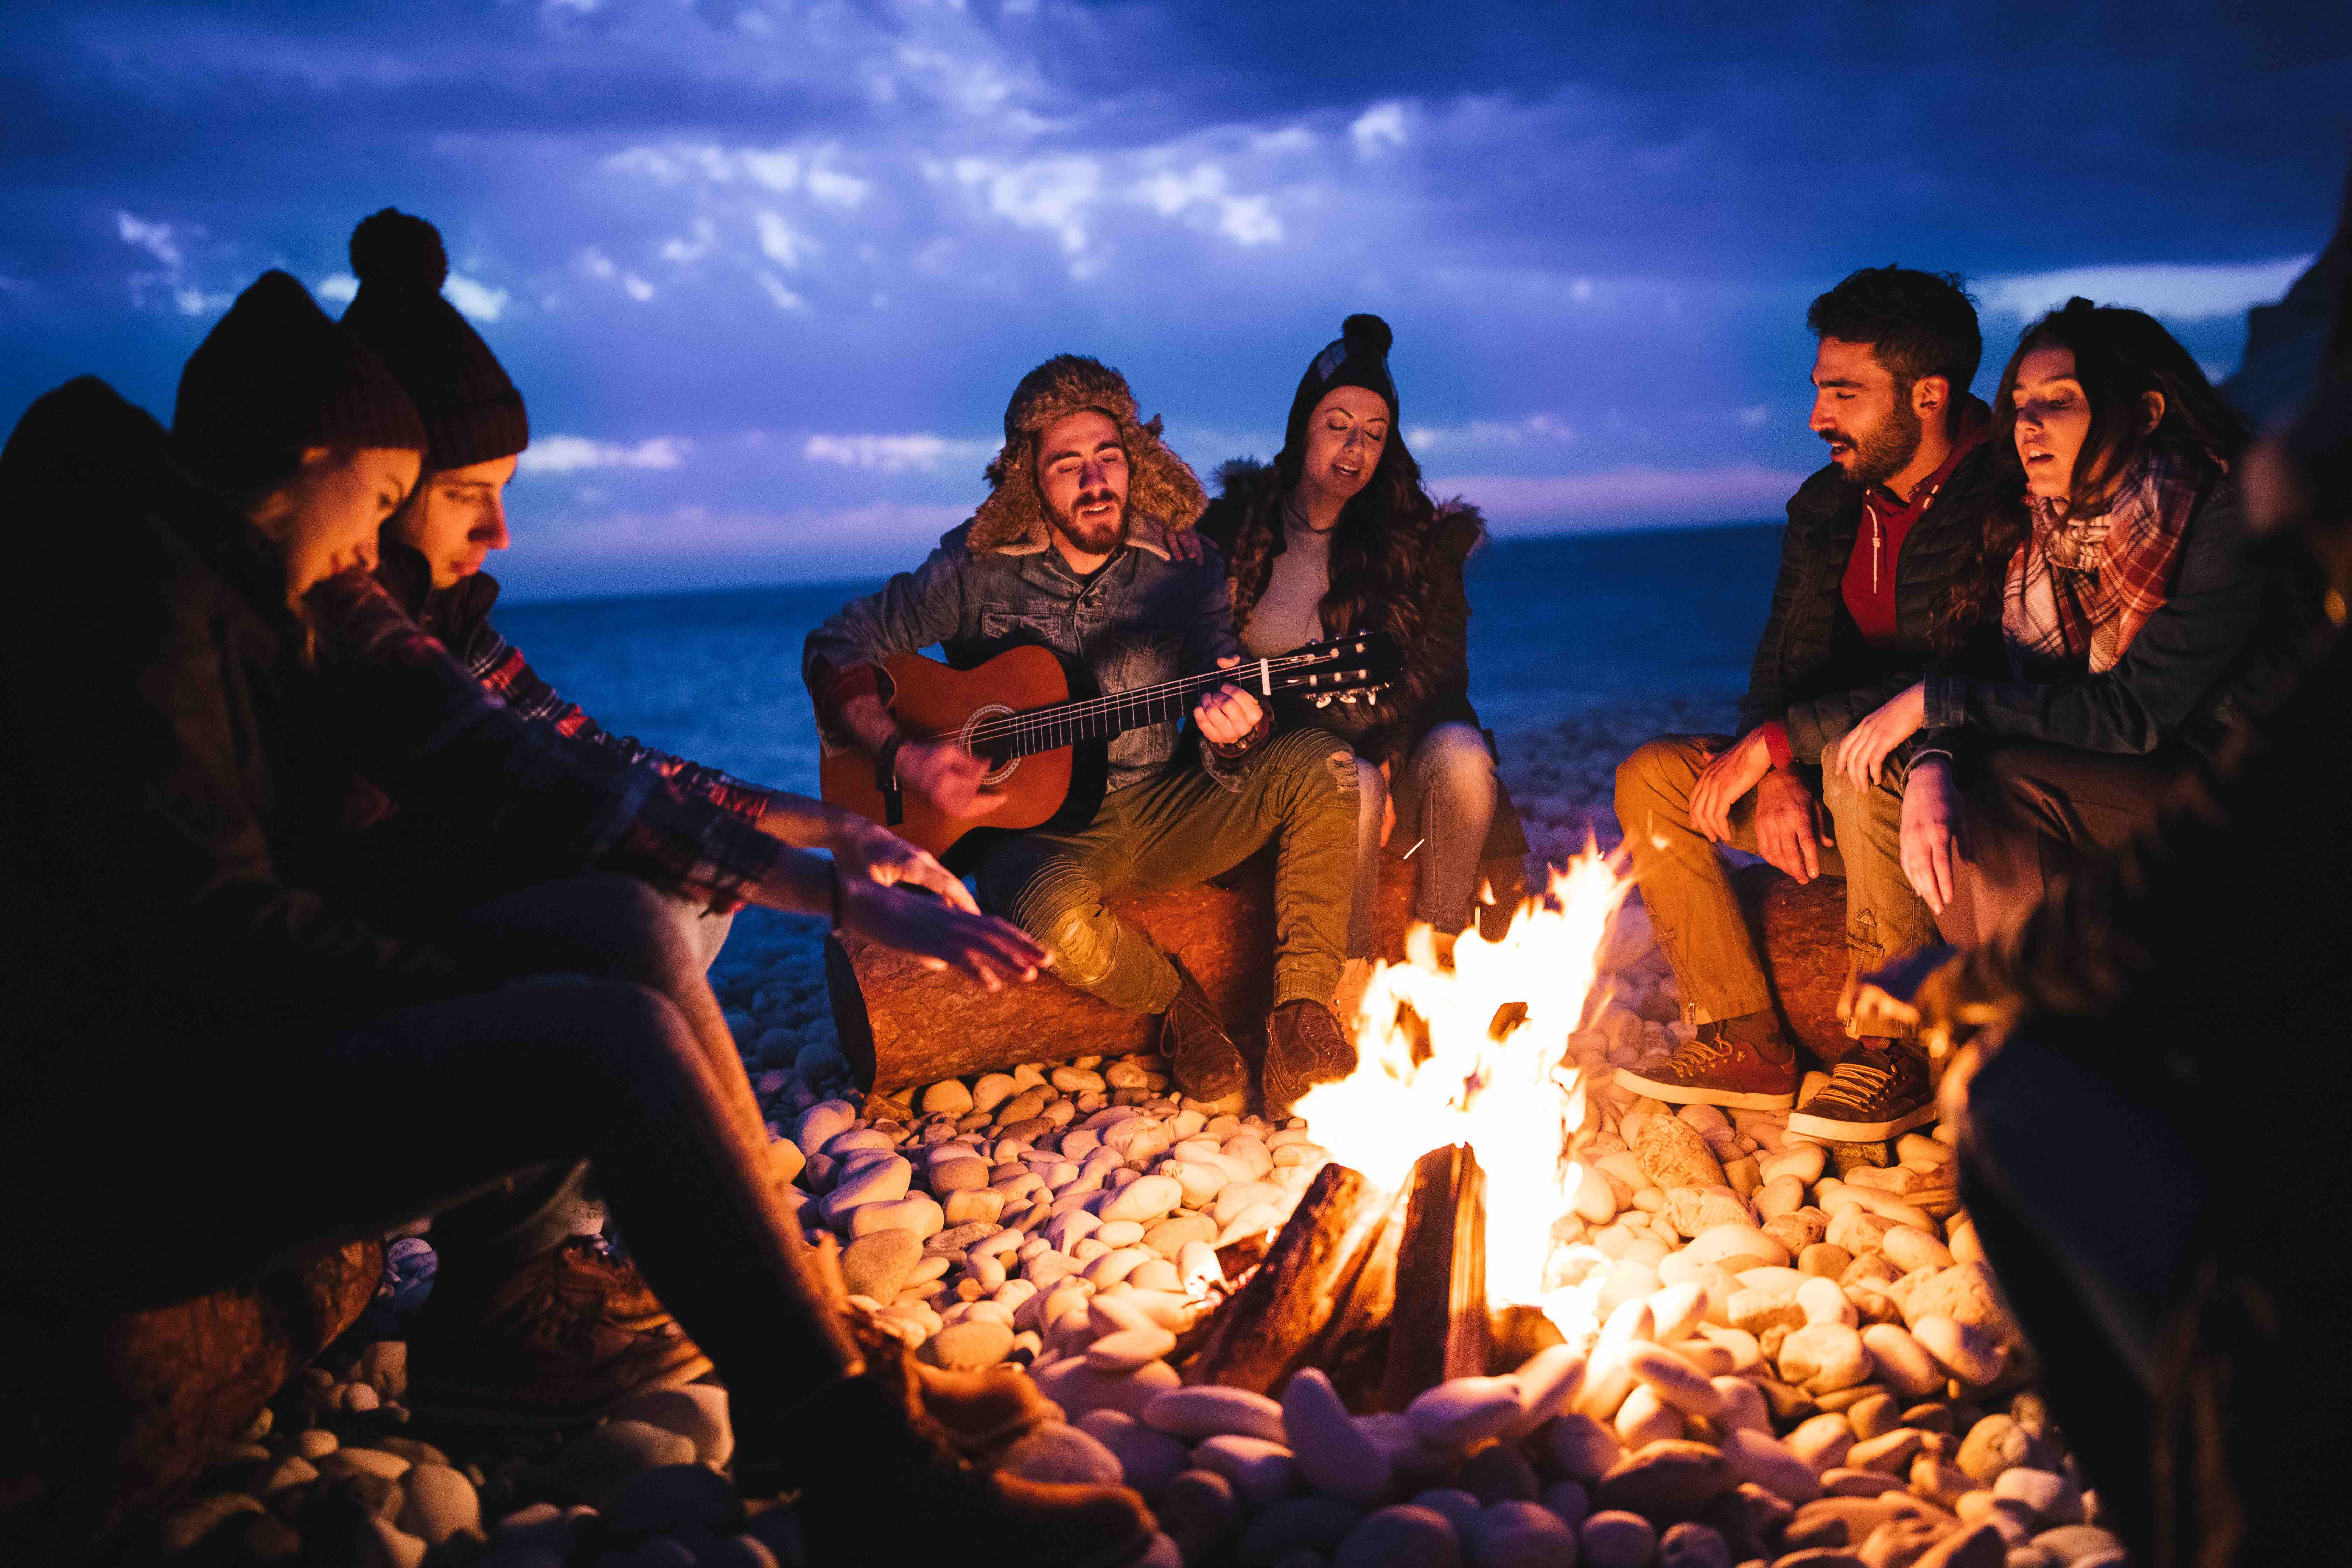 Friends playing guitar and singing around bonfire at the